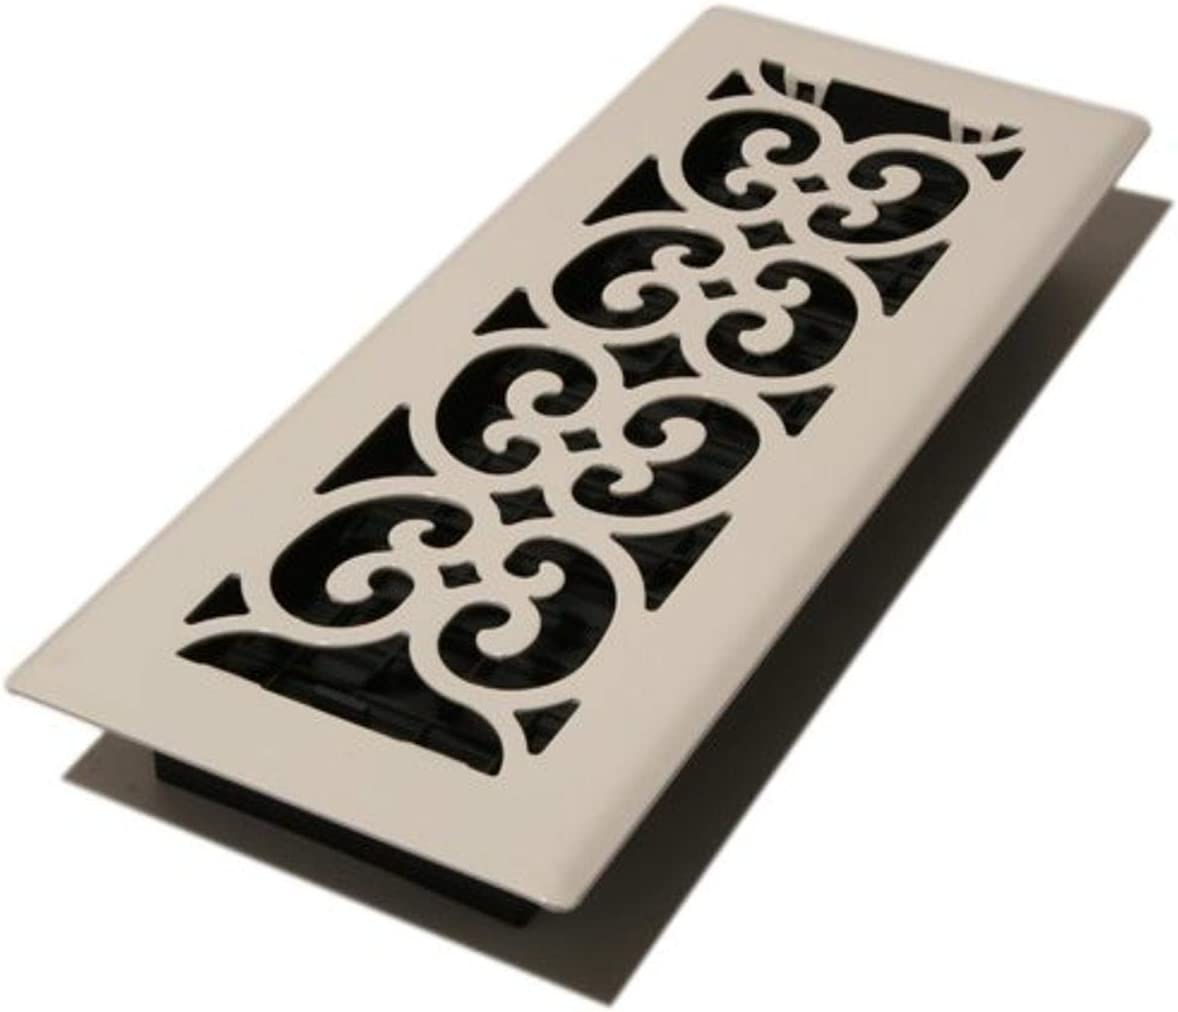 Decor Grates FS412-WH 4-Inch by 12-Inch Scroll Metal Floor Register, White